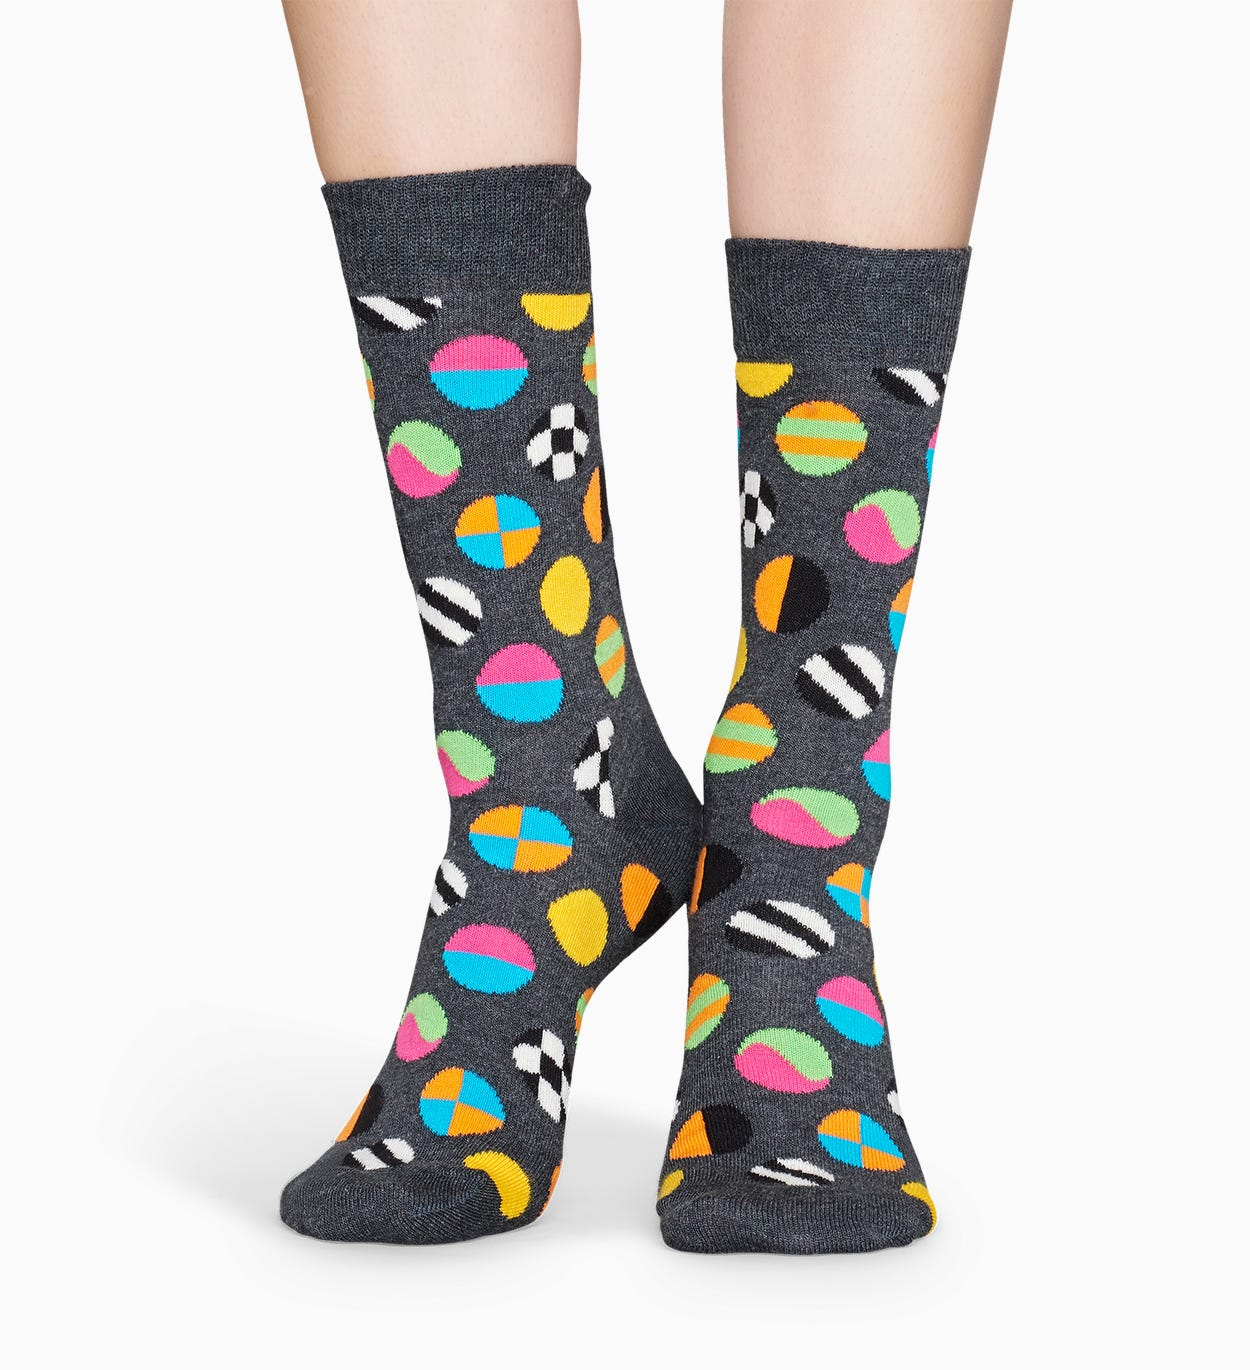 Gemusterte dunkelgraue Socken: Clashing Dot | Happy Socks